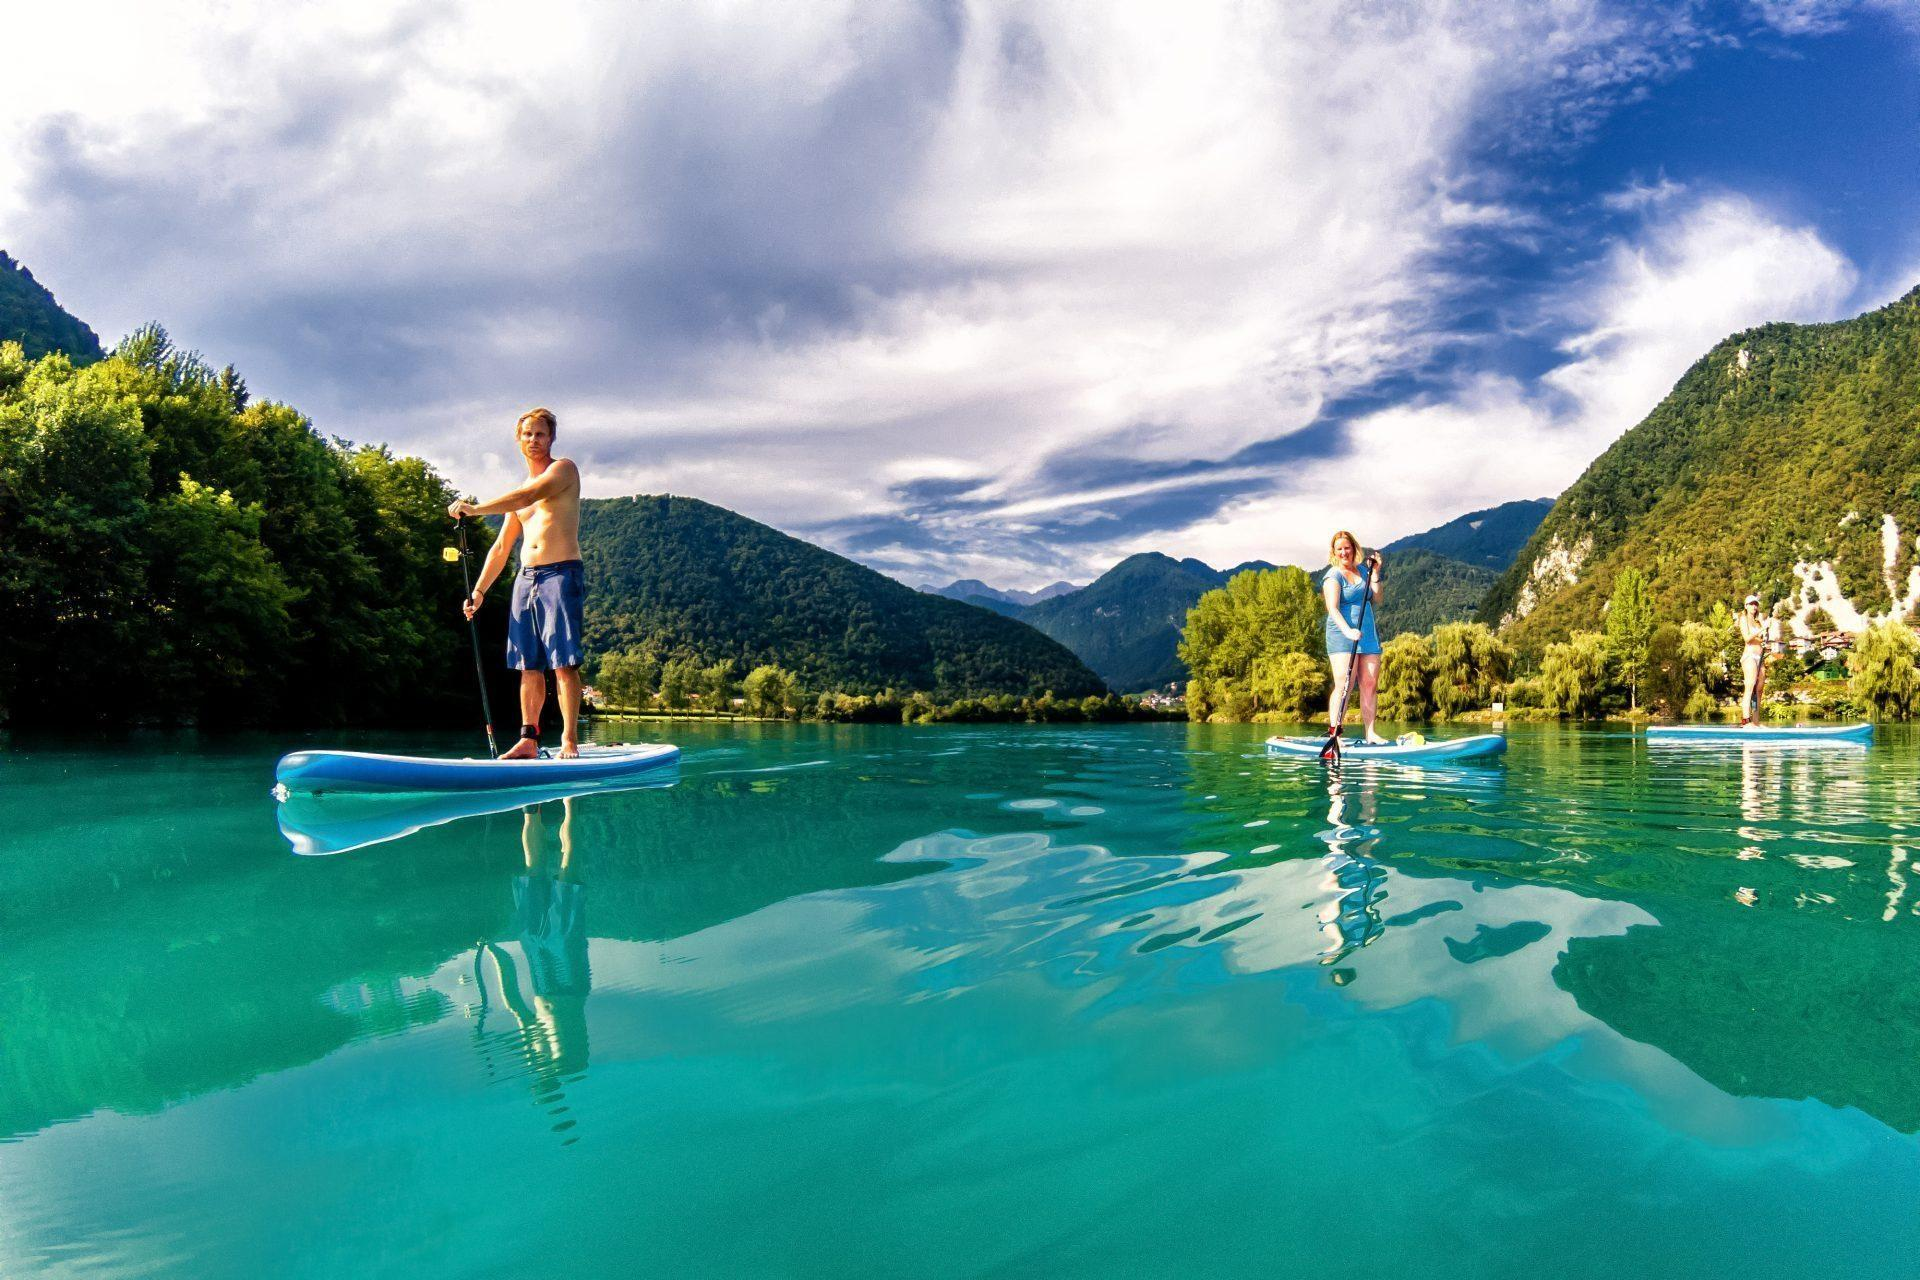 Sup tour Soca river, Soca valley, Slovenia, Europe